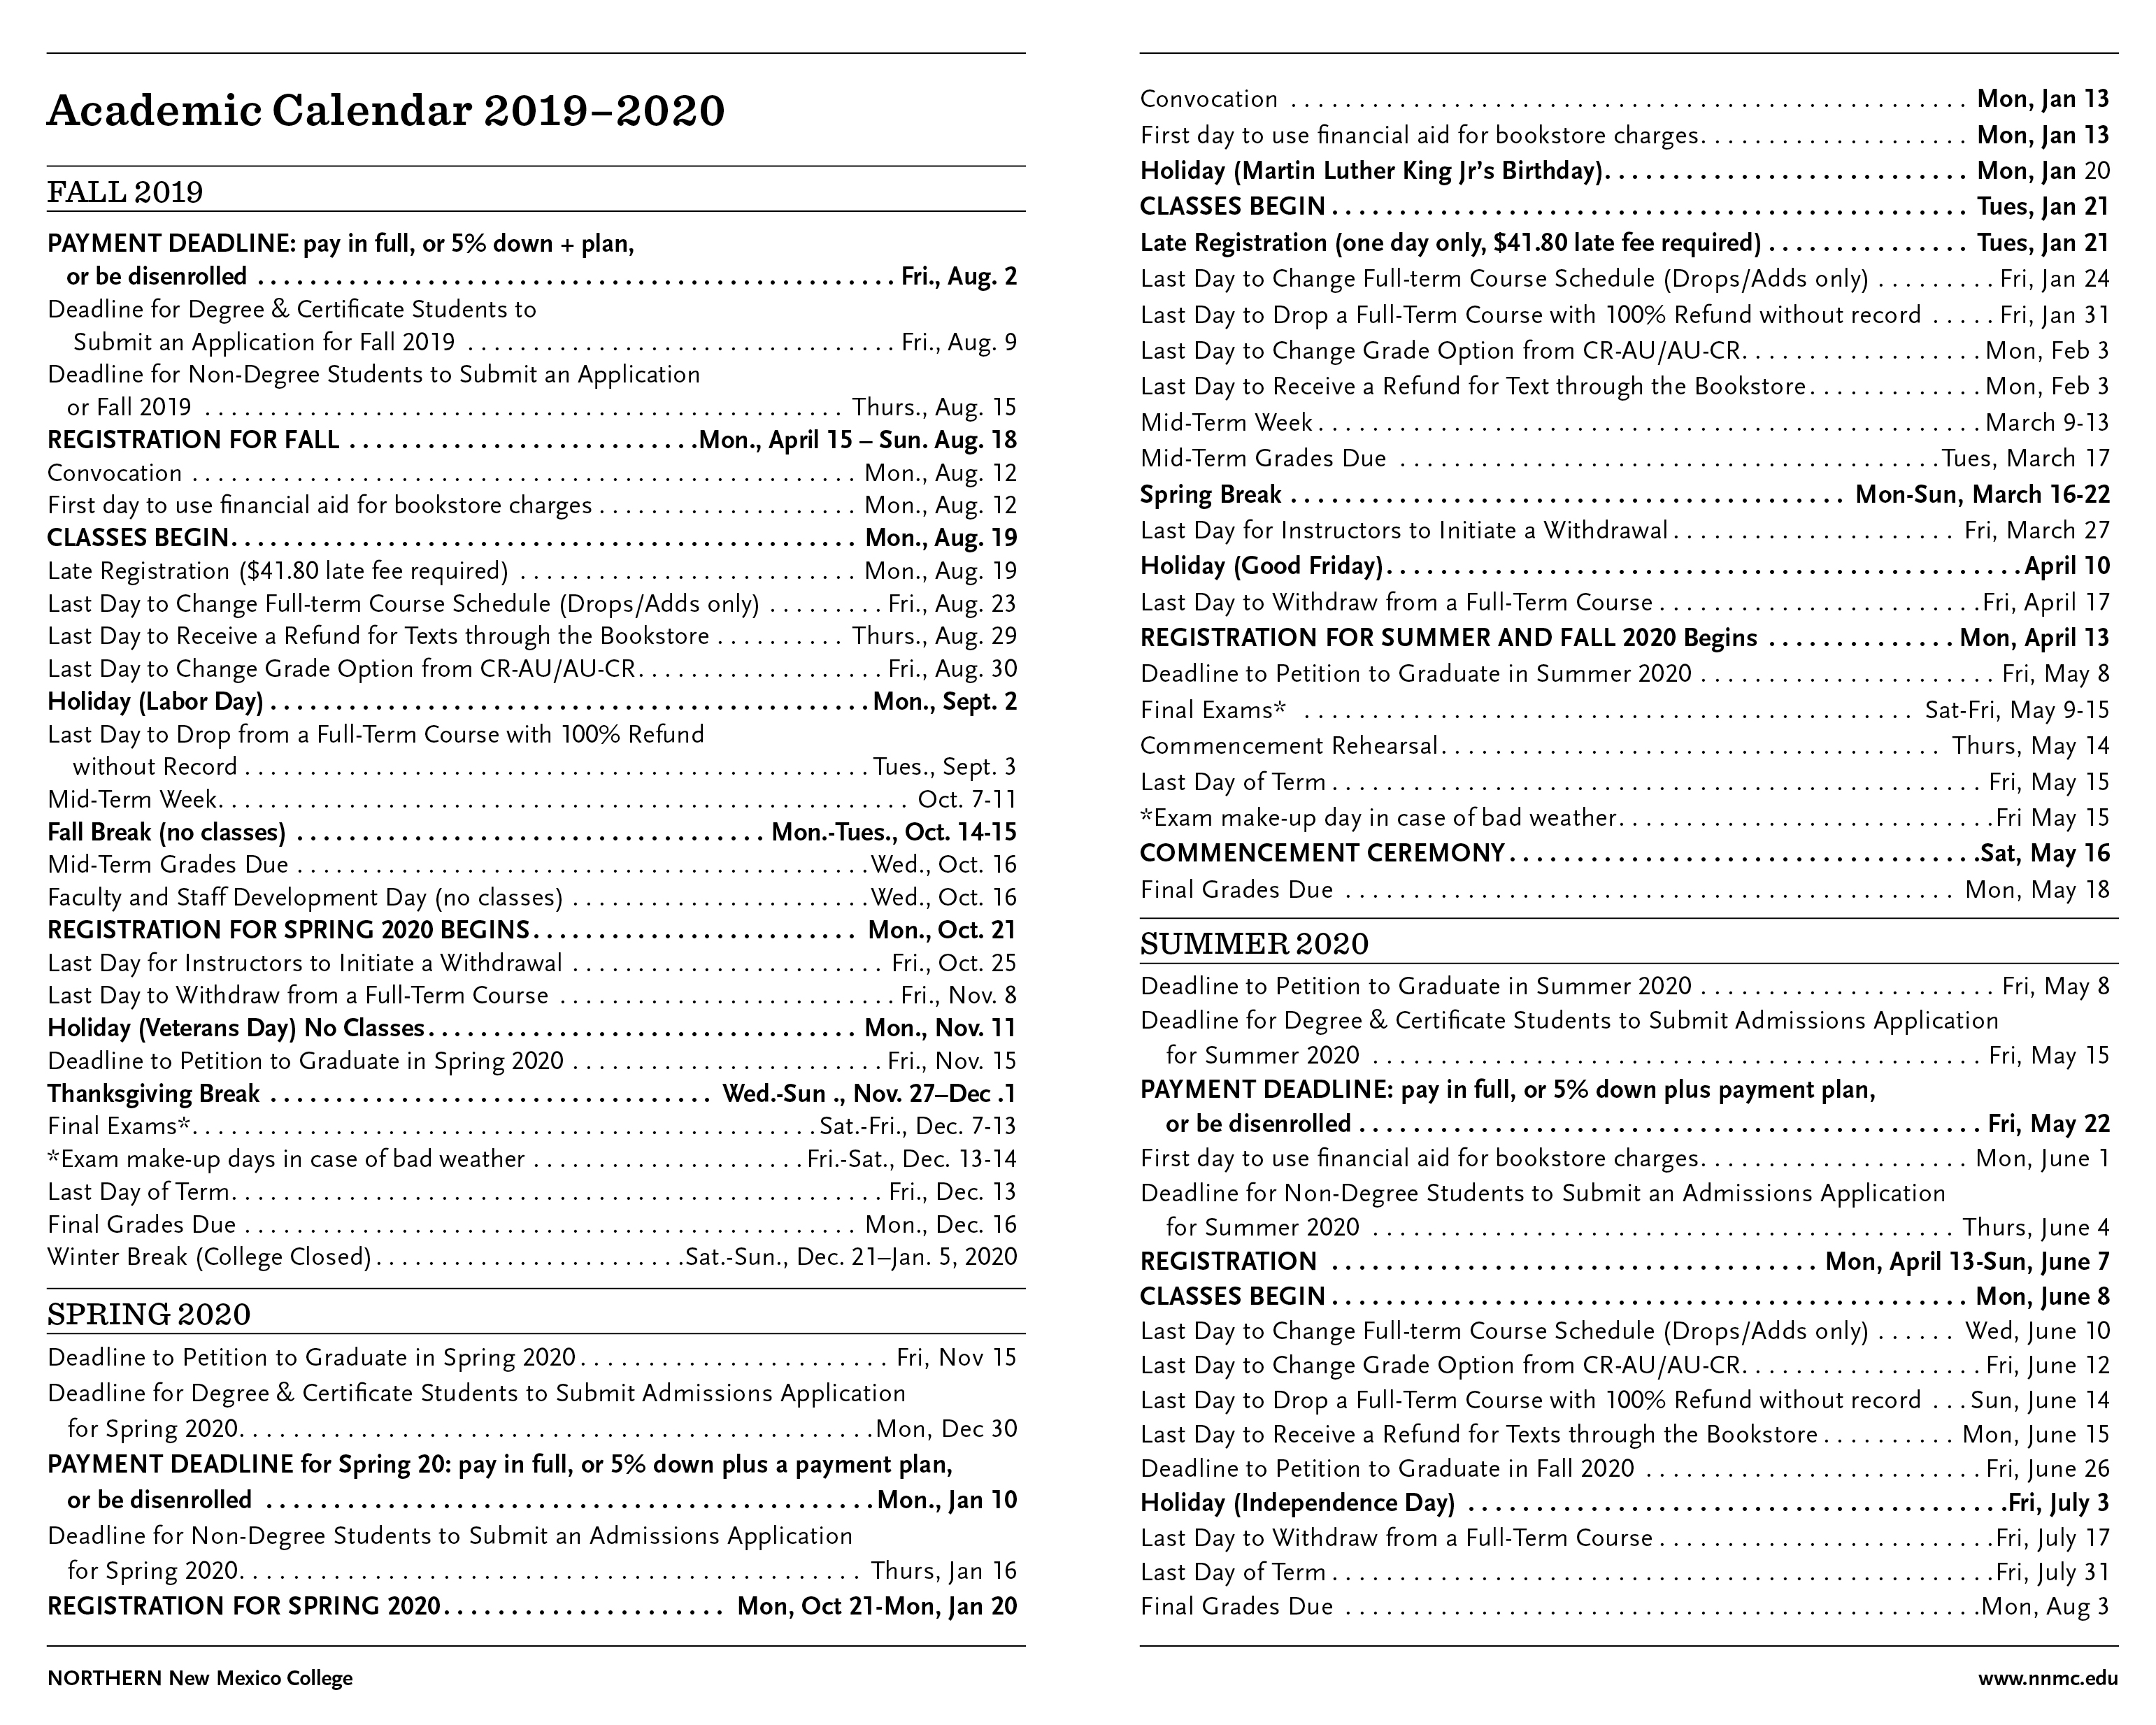 Academic Calendar 2019-20   Northern New Mexico College